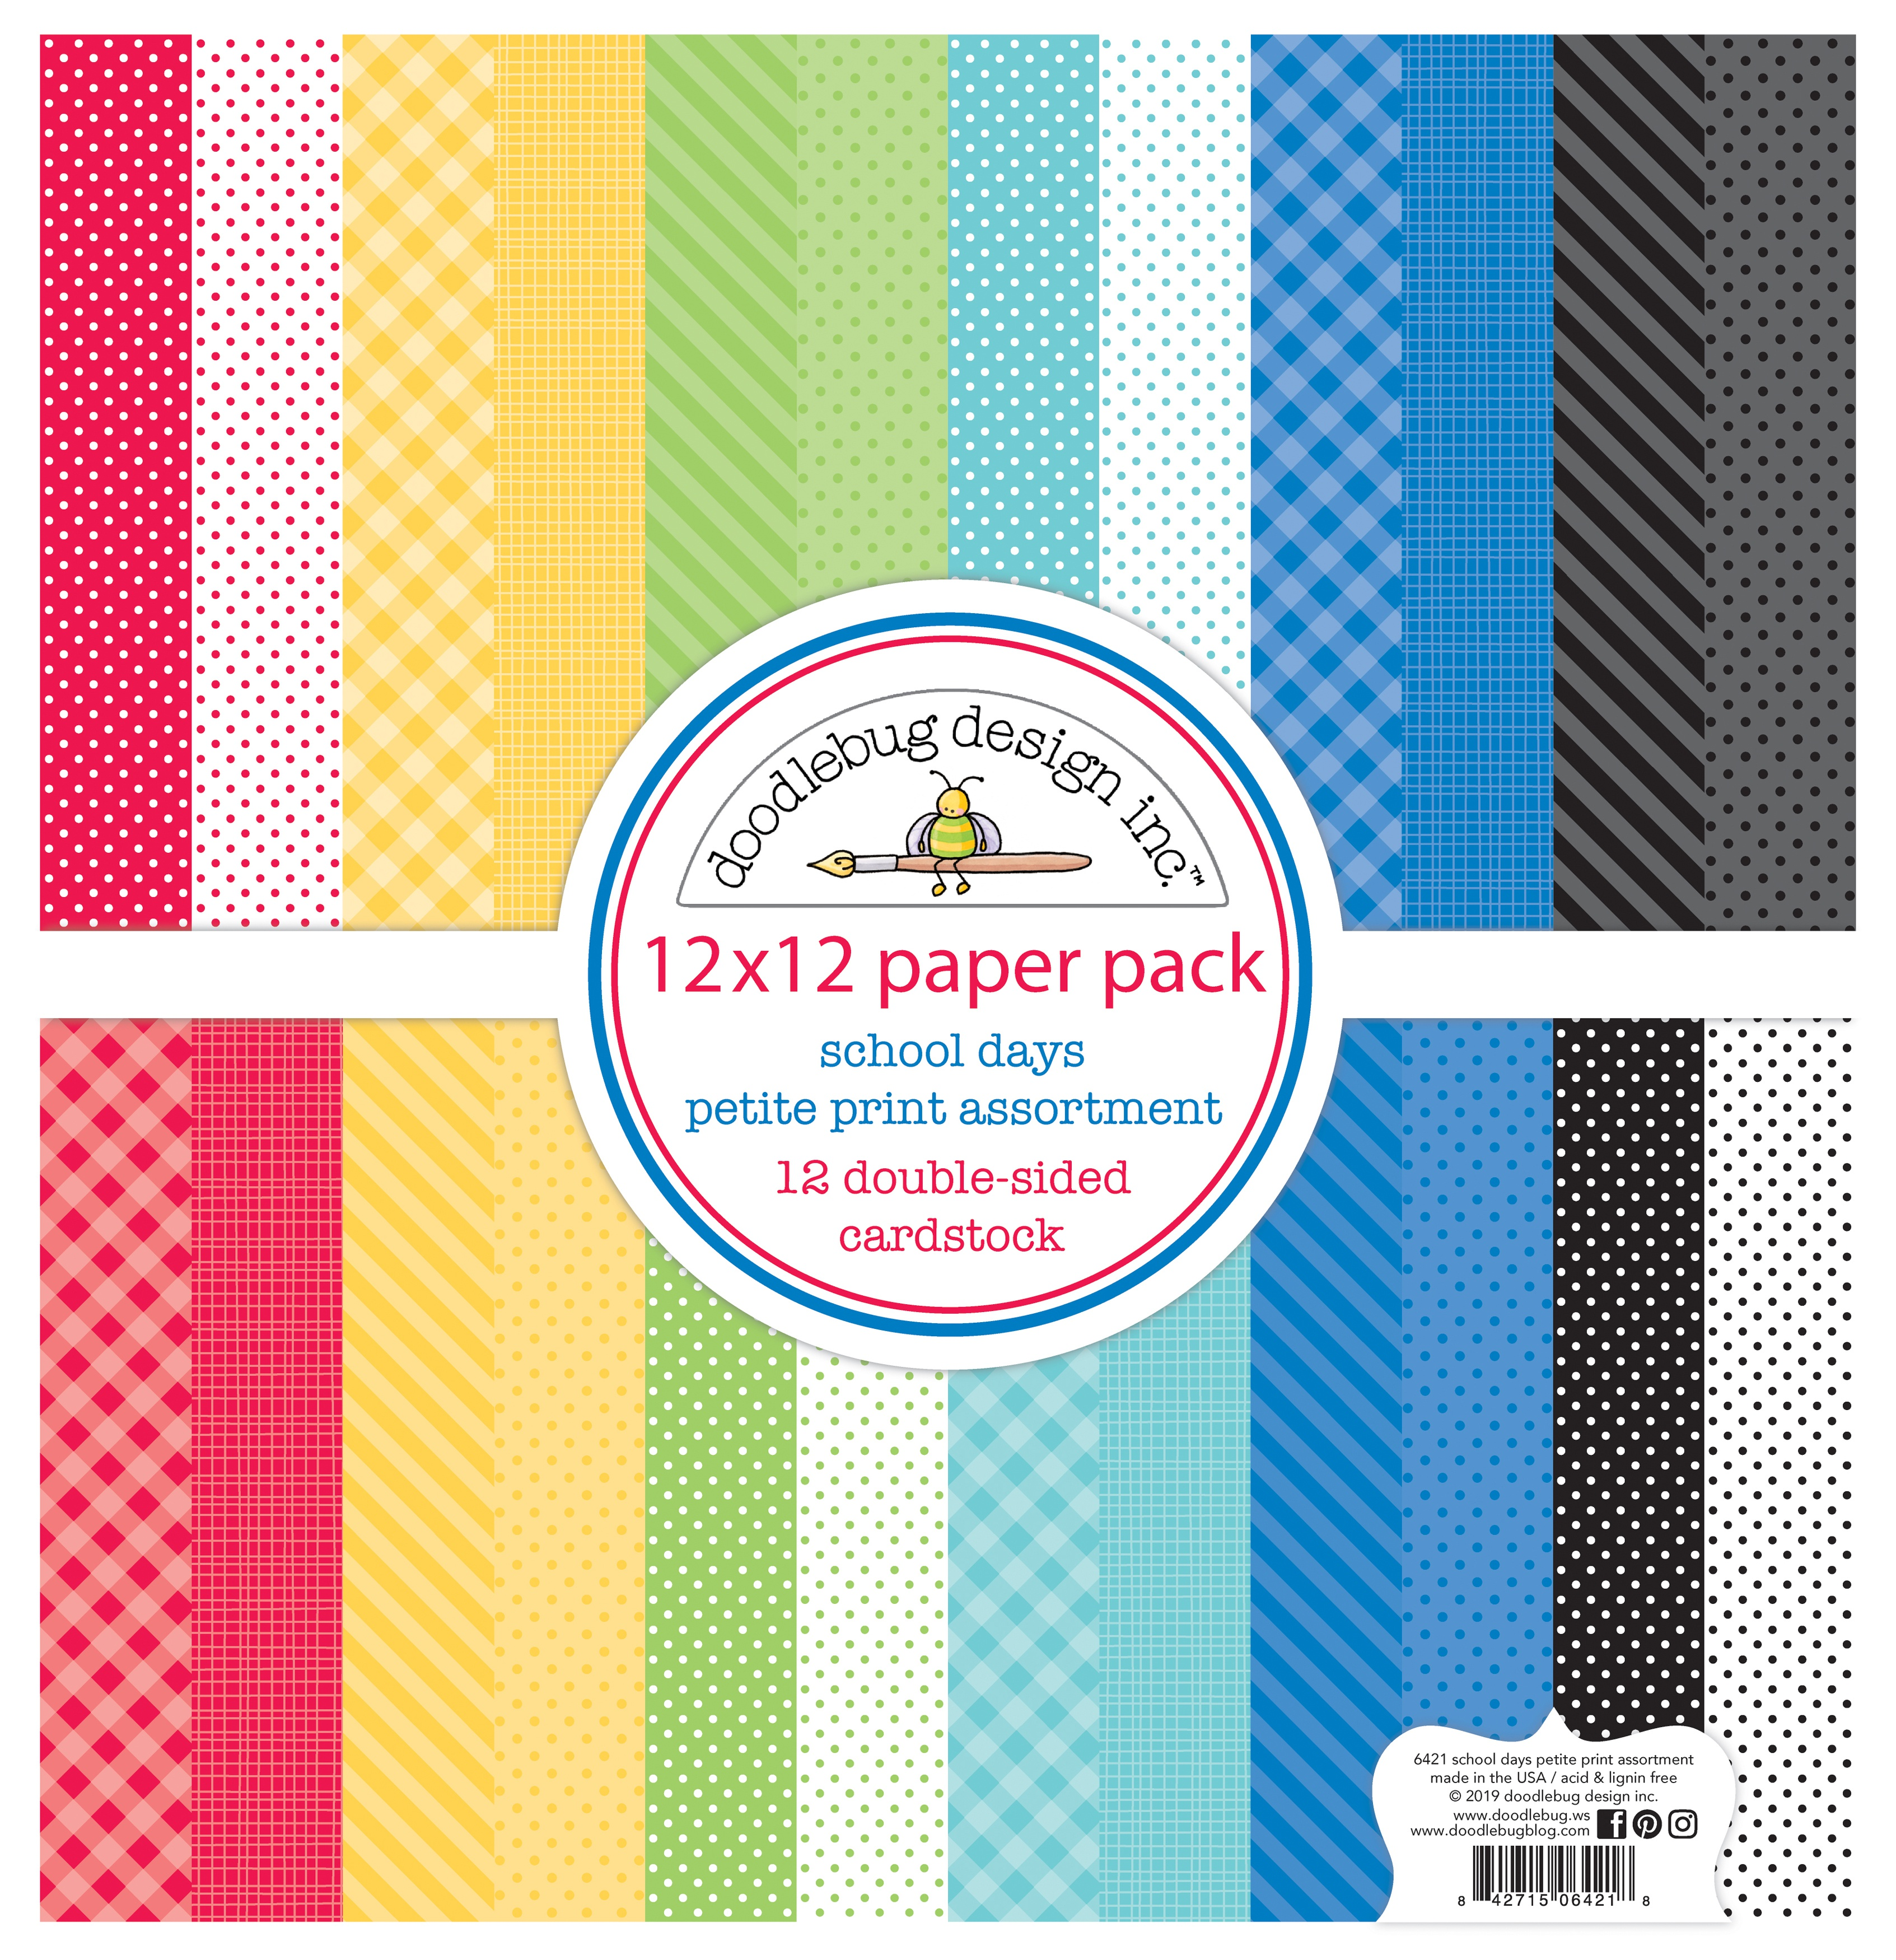 Doodlebug Petite Prints Double-Sided Cardstock 12X12 12/Pk-School Days, 12 Des...